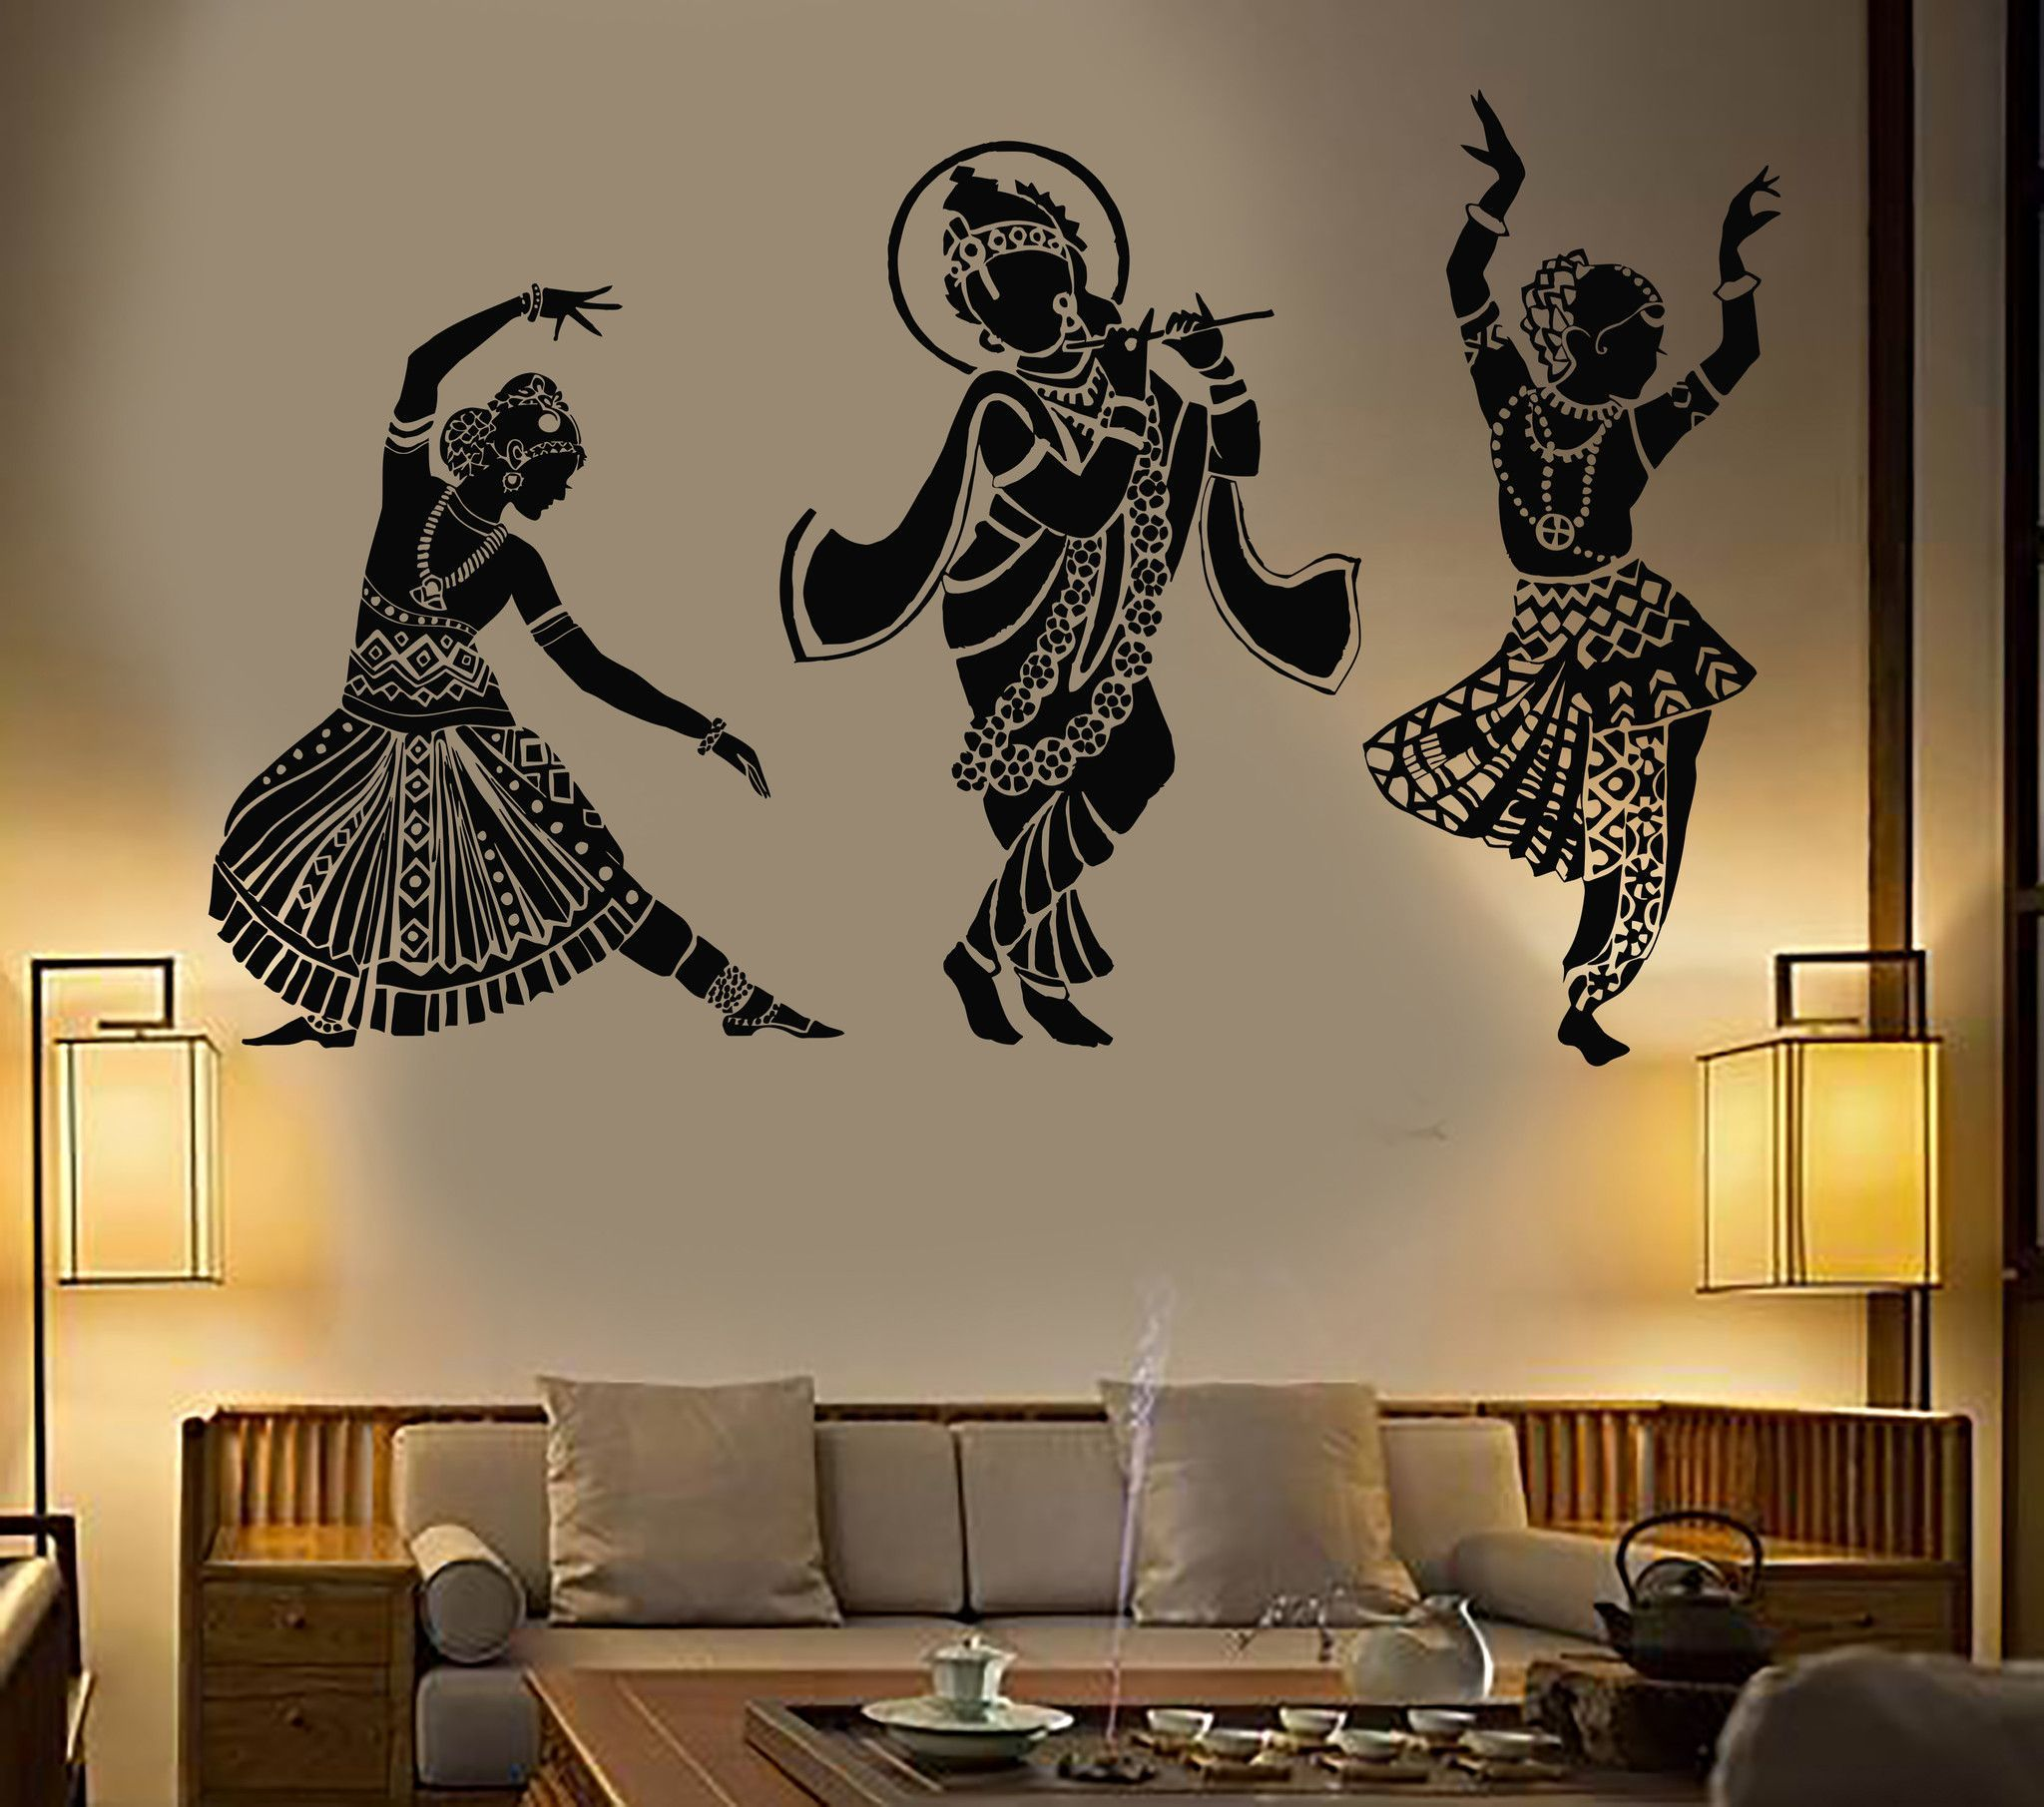 Vinyl Wall Decal Yin Yang Yoga Zen Meditation Bedroom Decor - Locations where sell wall decals